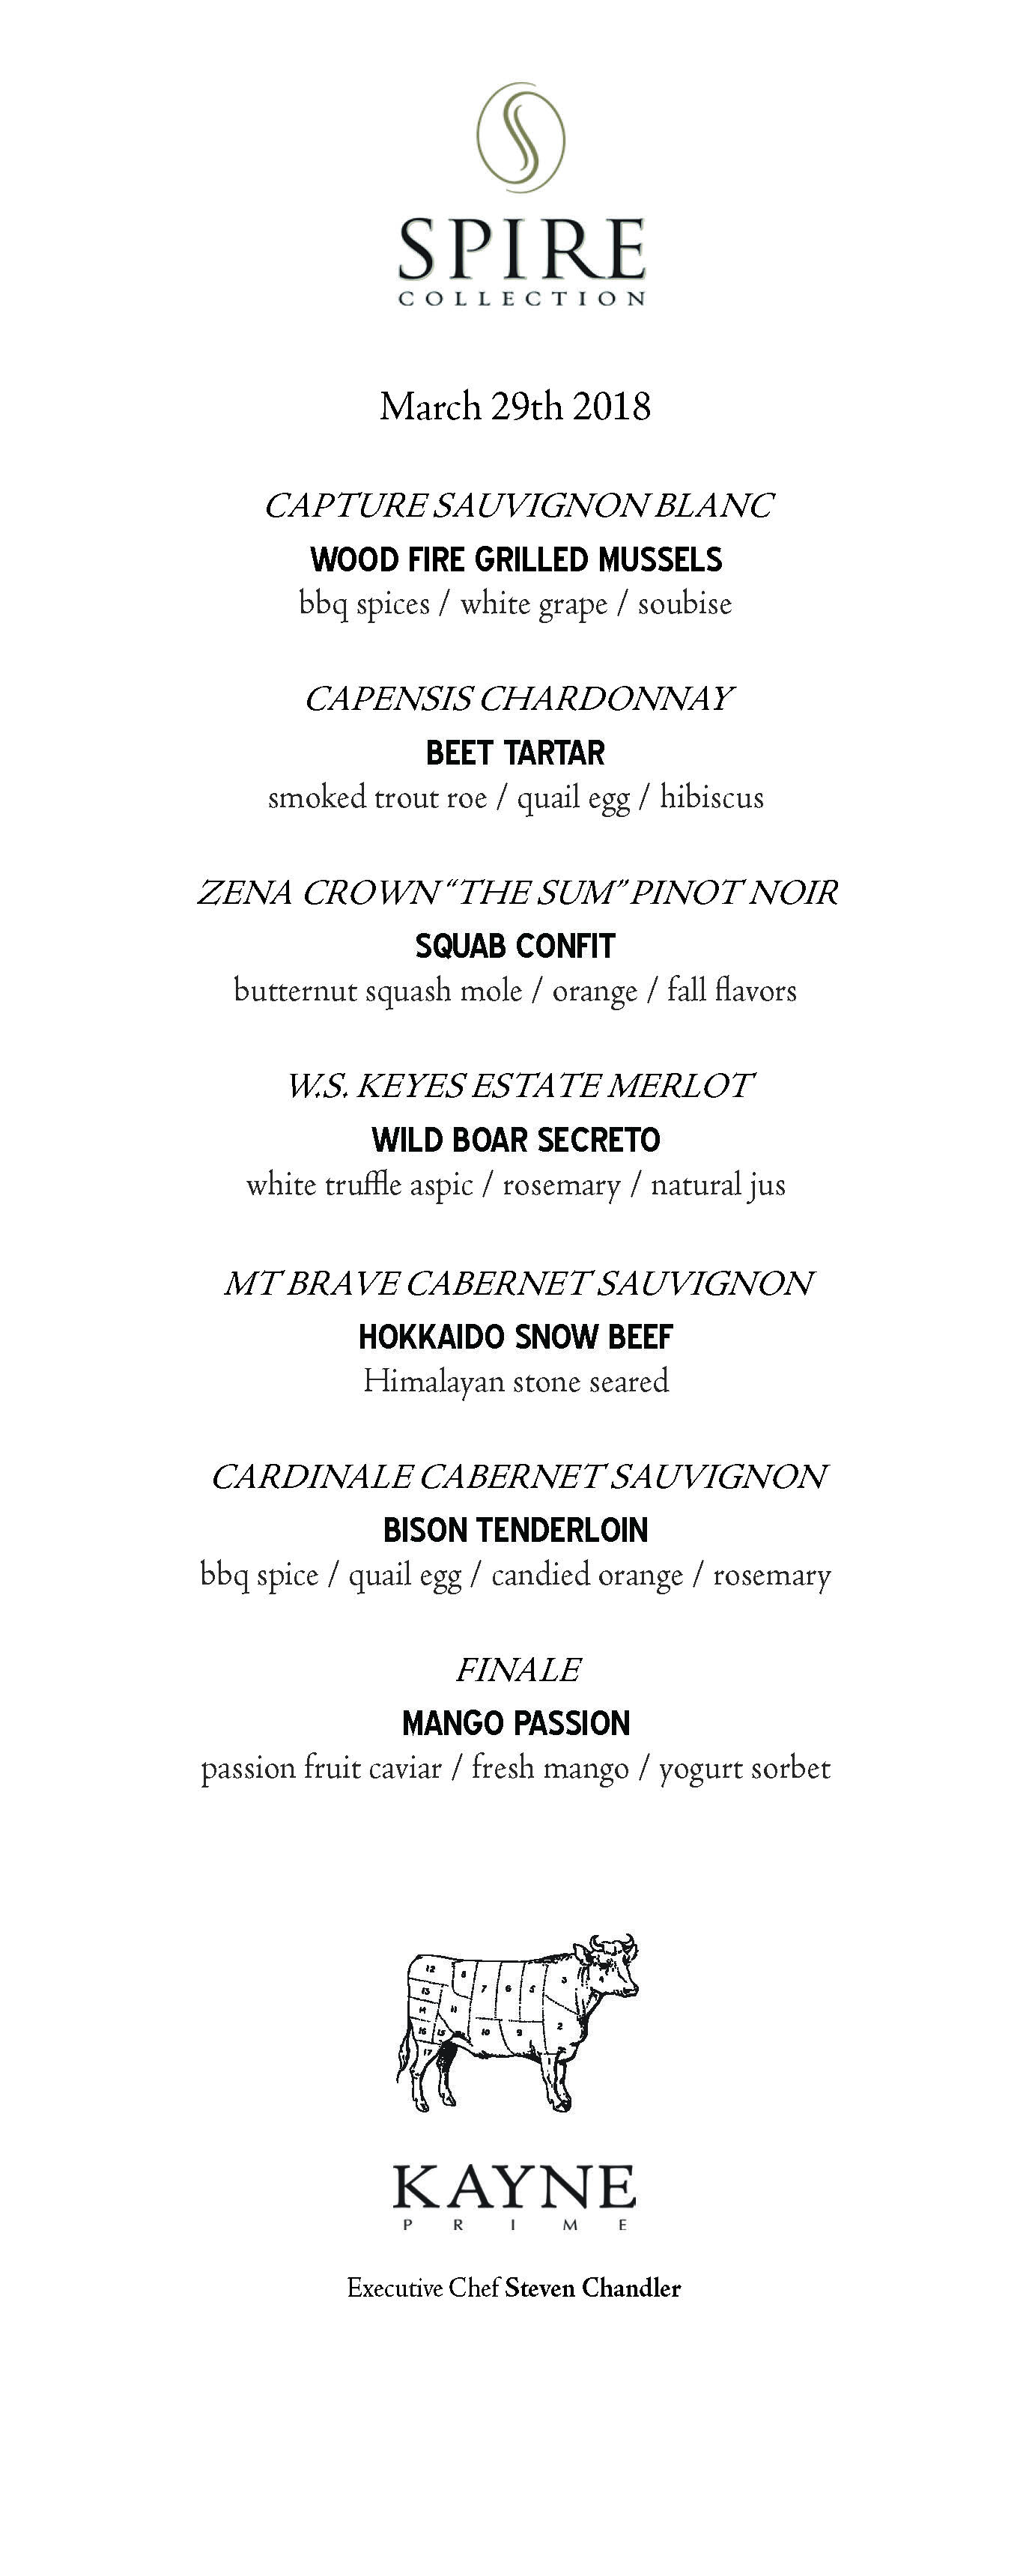 Spire Collection Dinner Menu